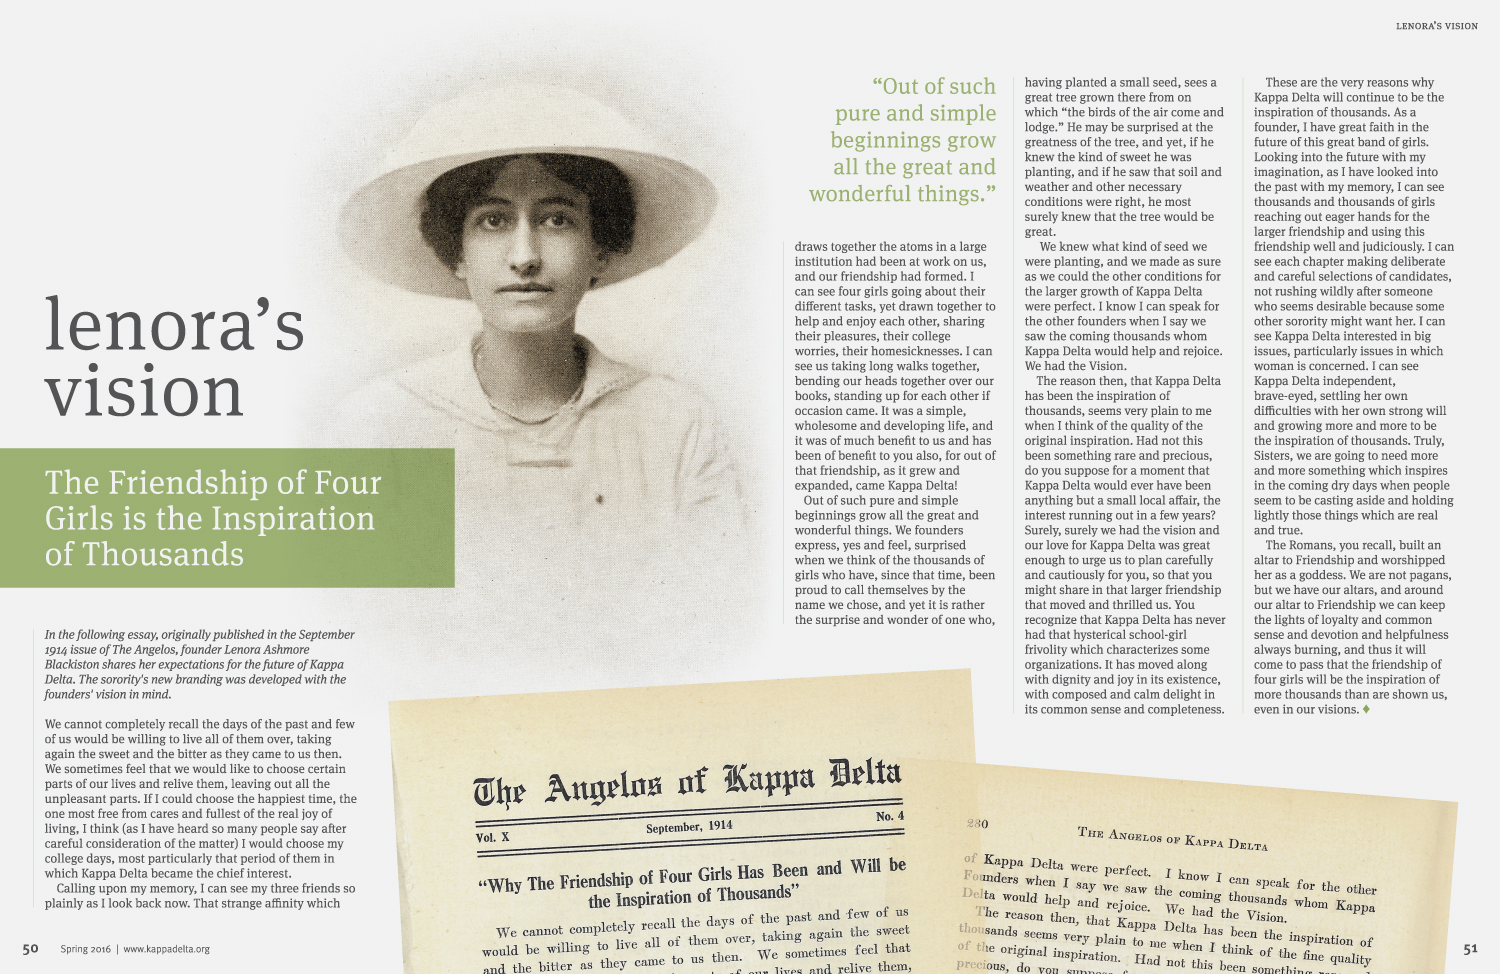 spring-2016-angelos-kappa-delta-sorority-lenoras-vision-founder-article-reprint